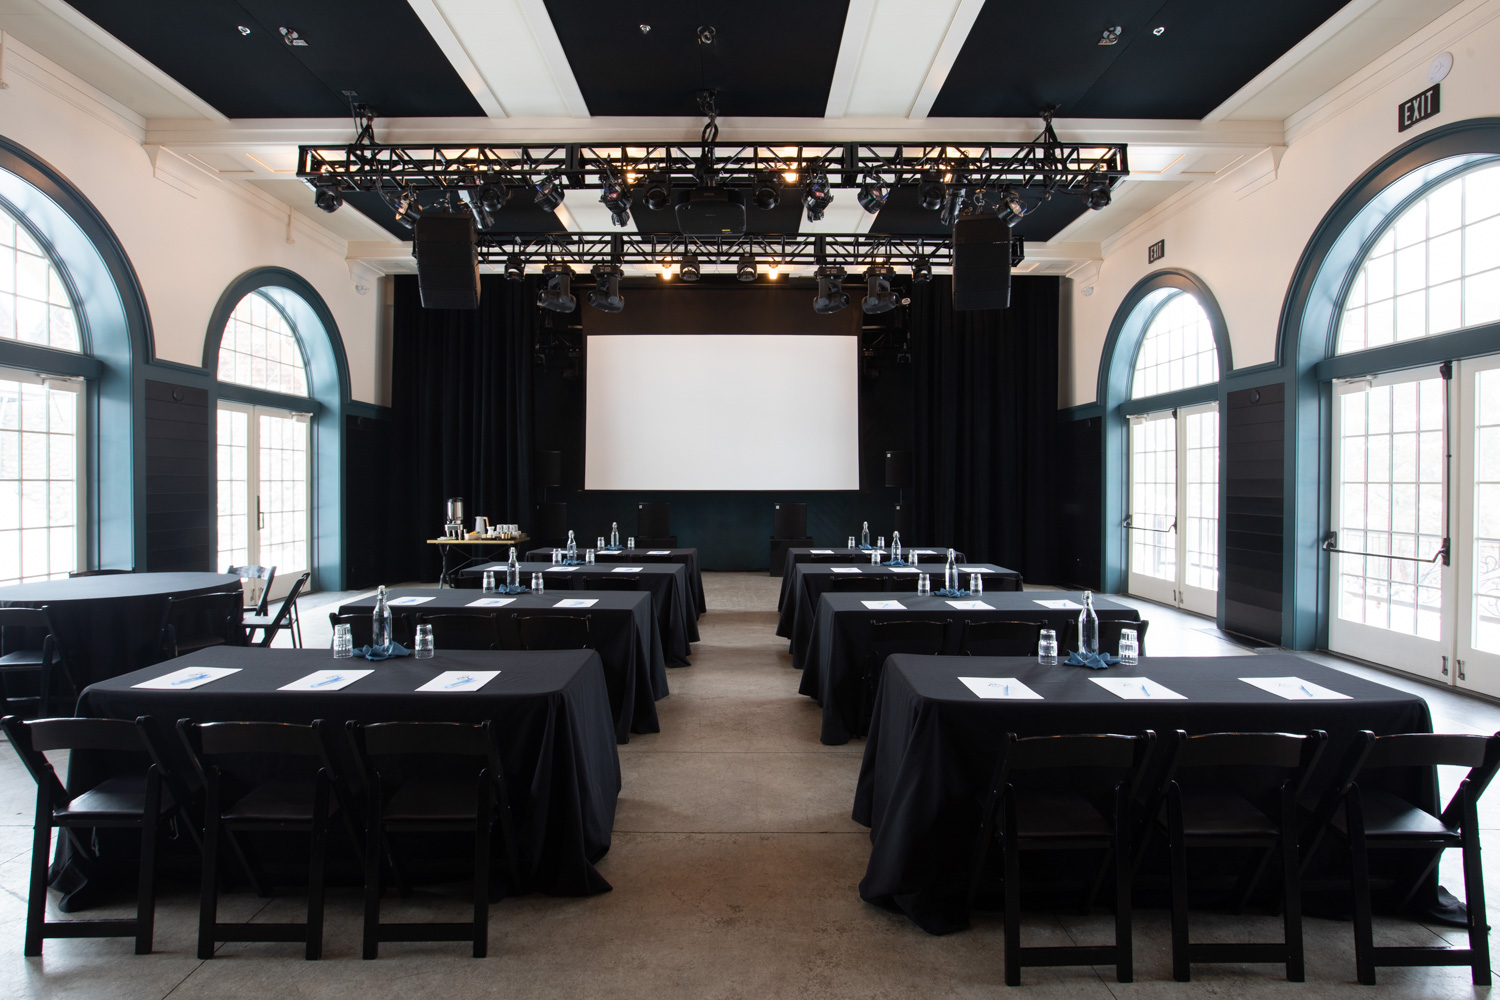 Ivy-Ballroom-Surf-Hotel-Events-Meetings-Space-Corporate-Gathering-Projector-Buena-Vista-colorado-retreat